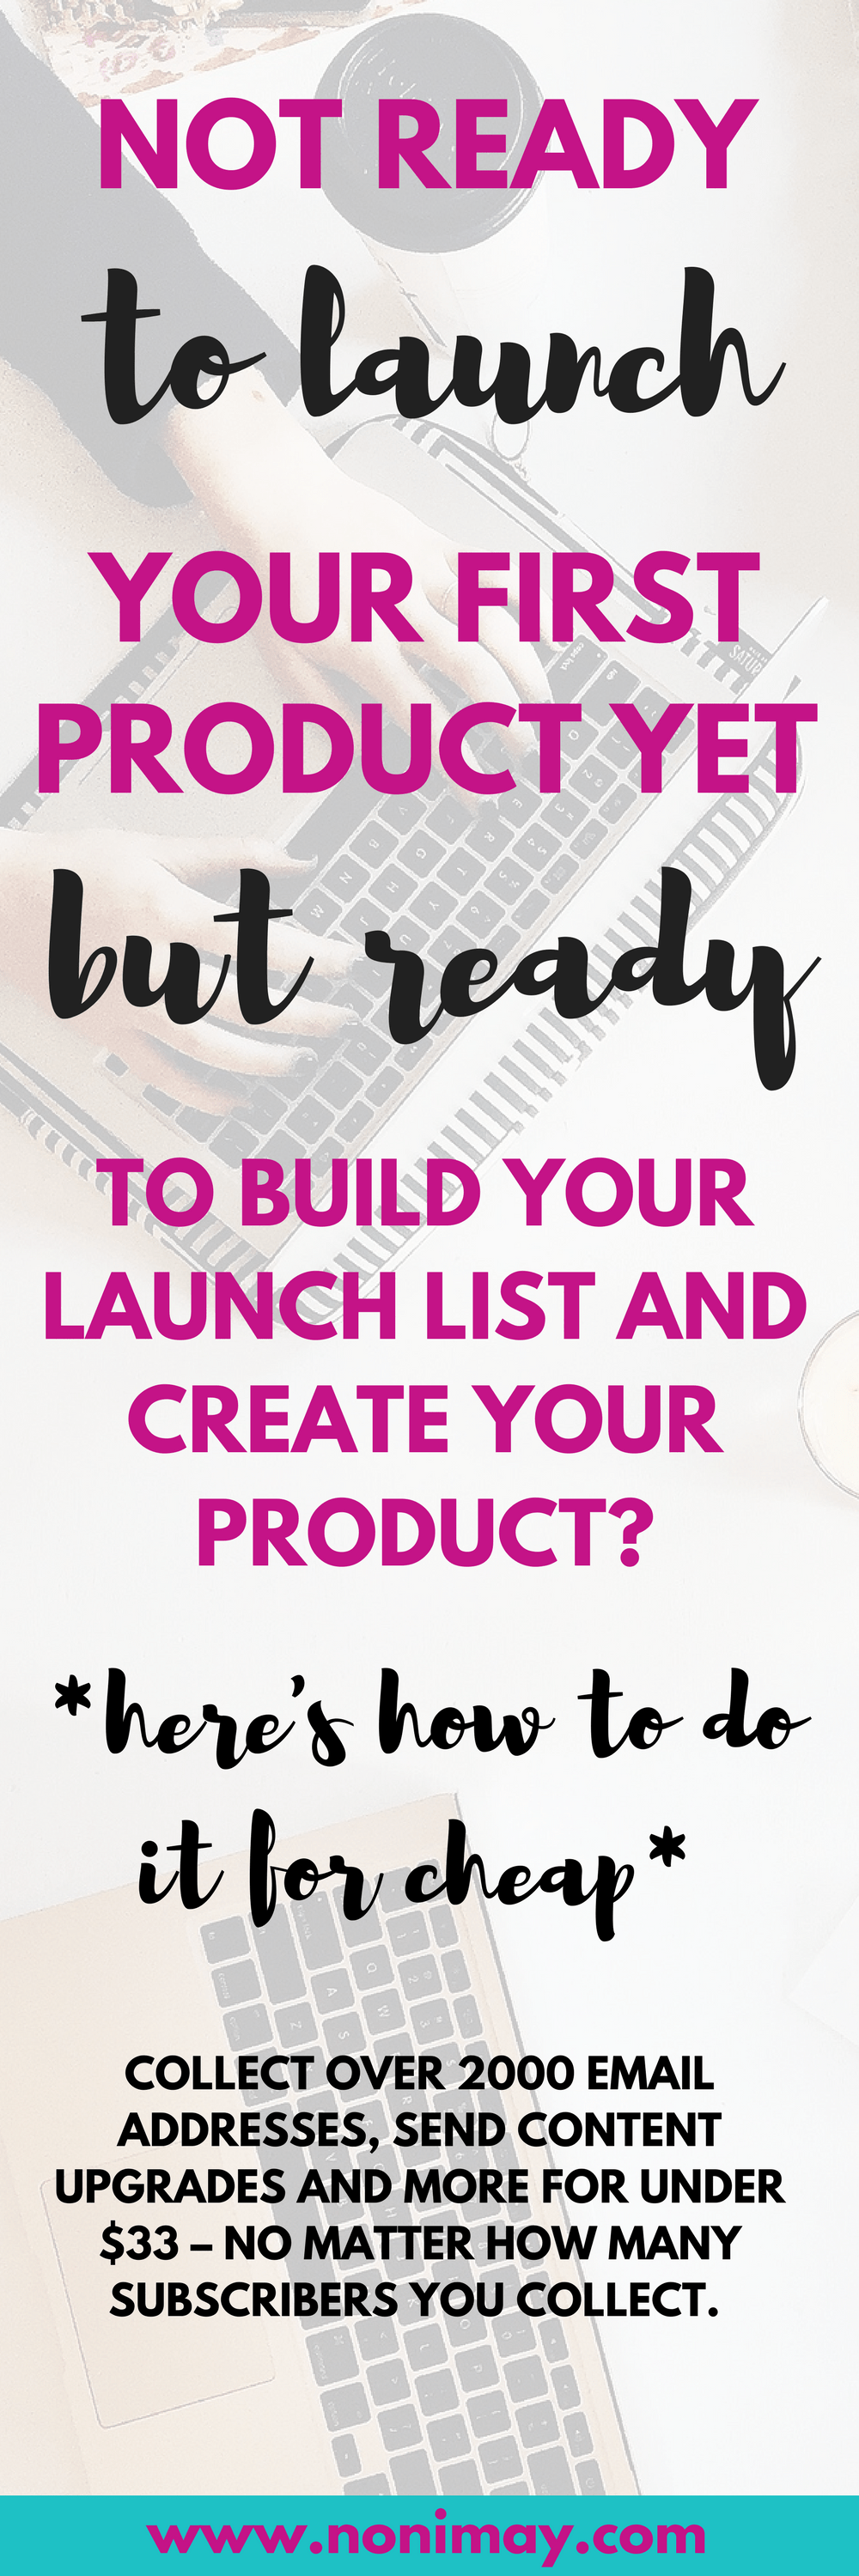 Not ready to launch your first product yet but ready to build your email list